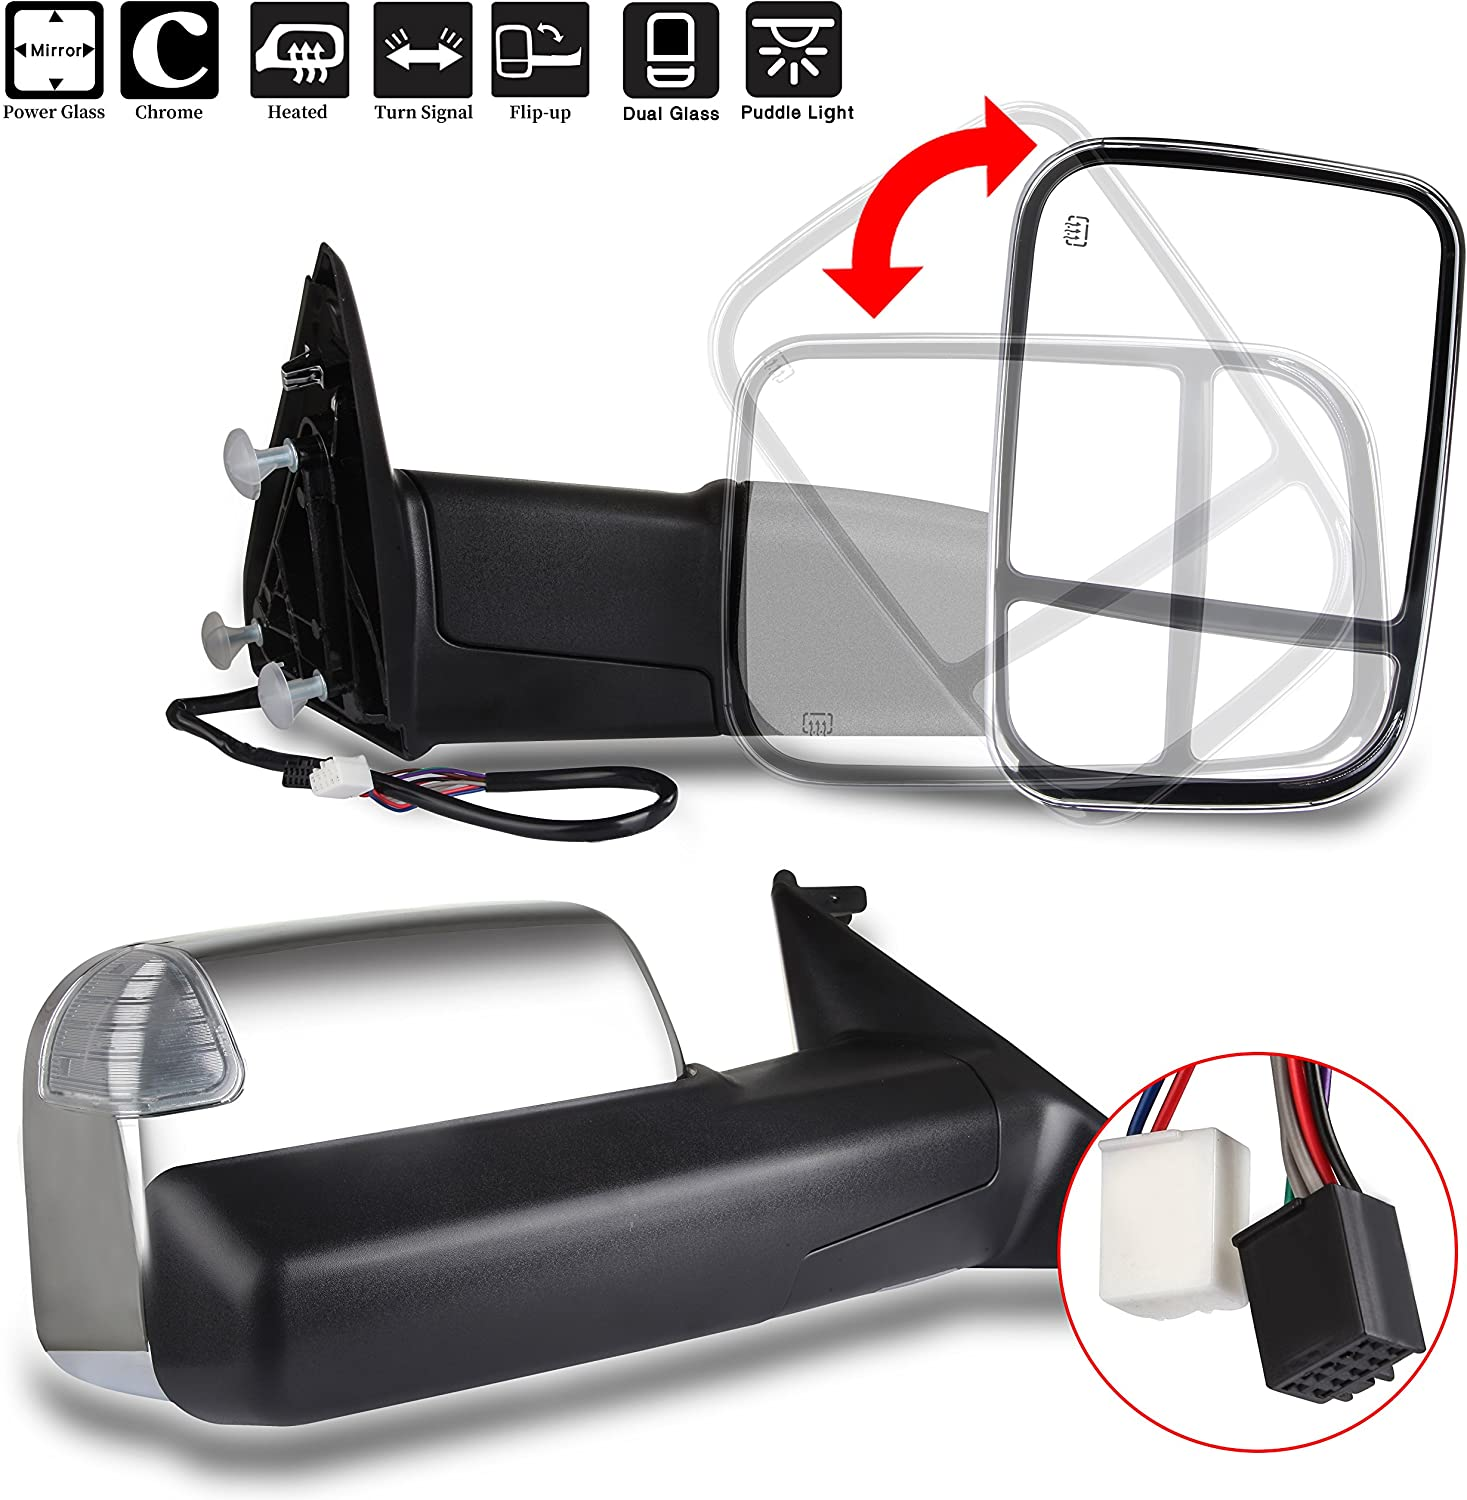 CTCAUTO Towing Mirrors Compatible with 2011-2019 Dodge Ram 1500//2500//3500 Tow Mirrors with Driver and Passenger Side Power Adjustment Heated with Turn Signal Light Puddle Light